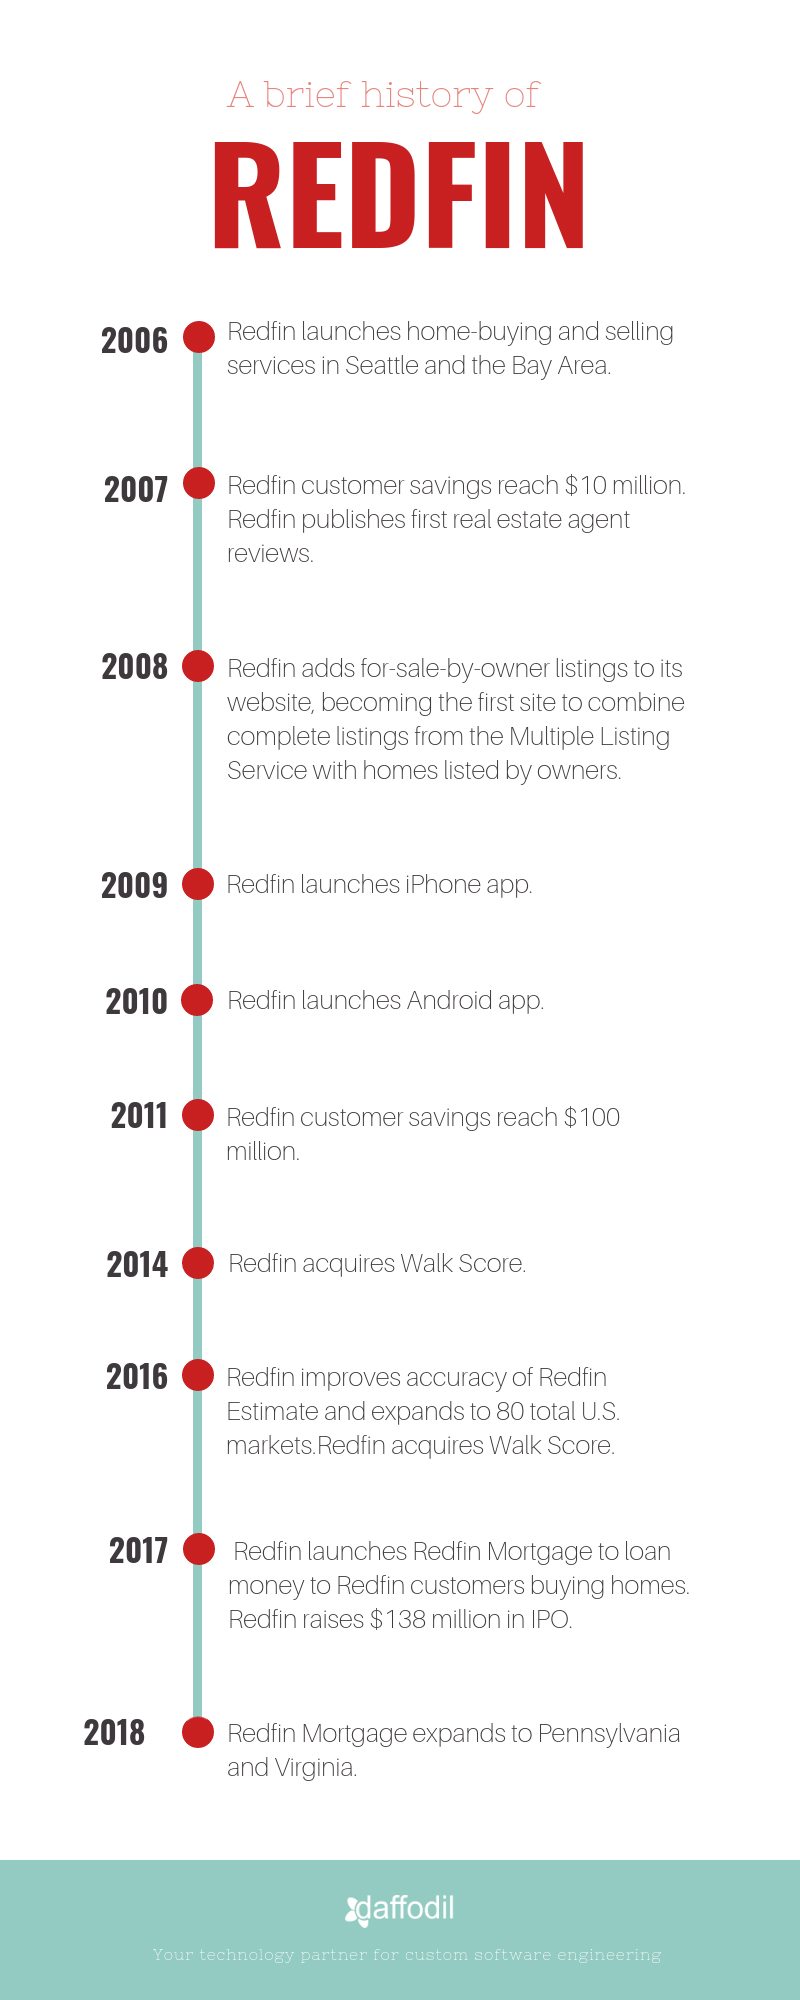 redfin business timeline